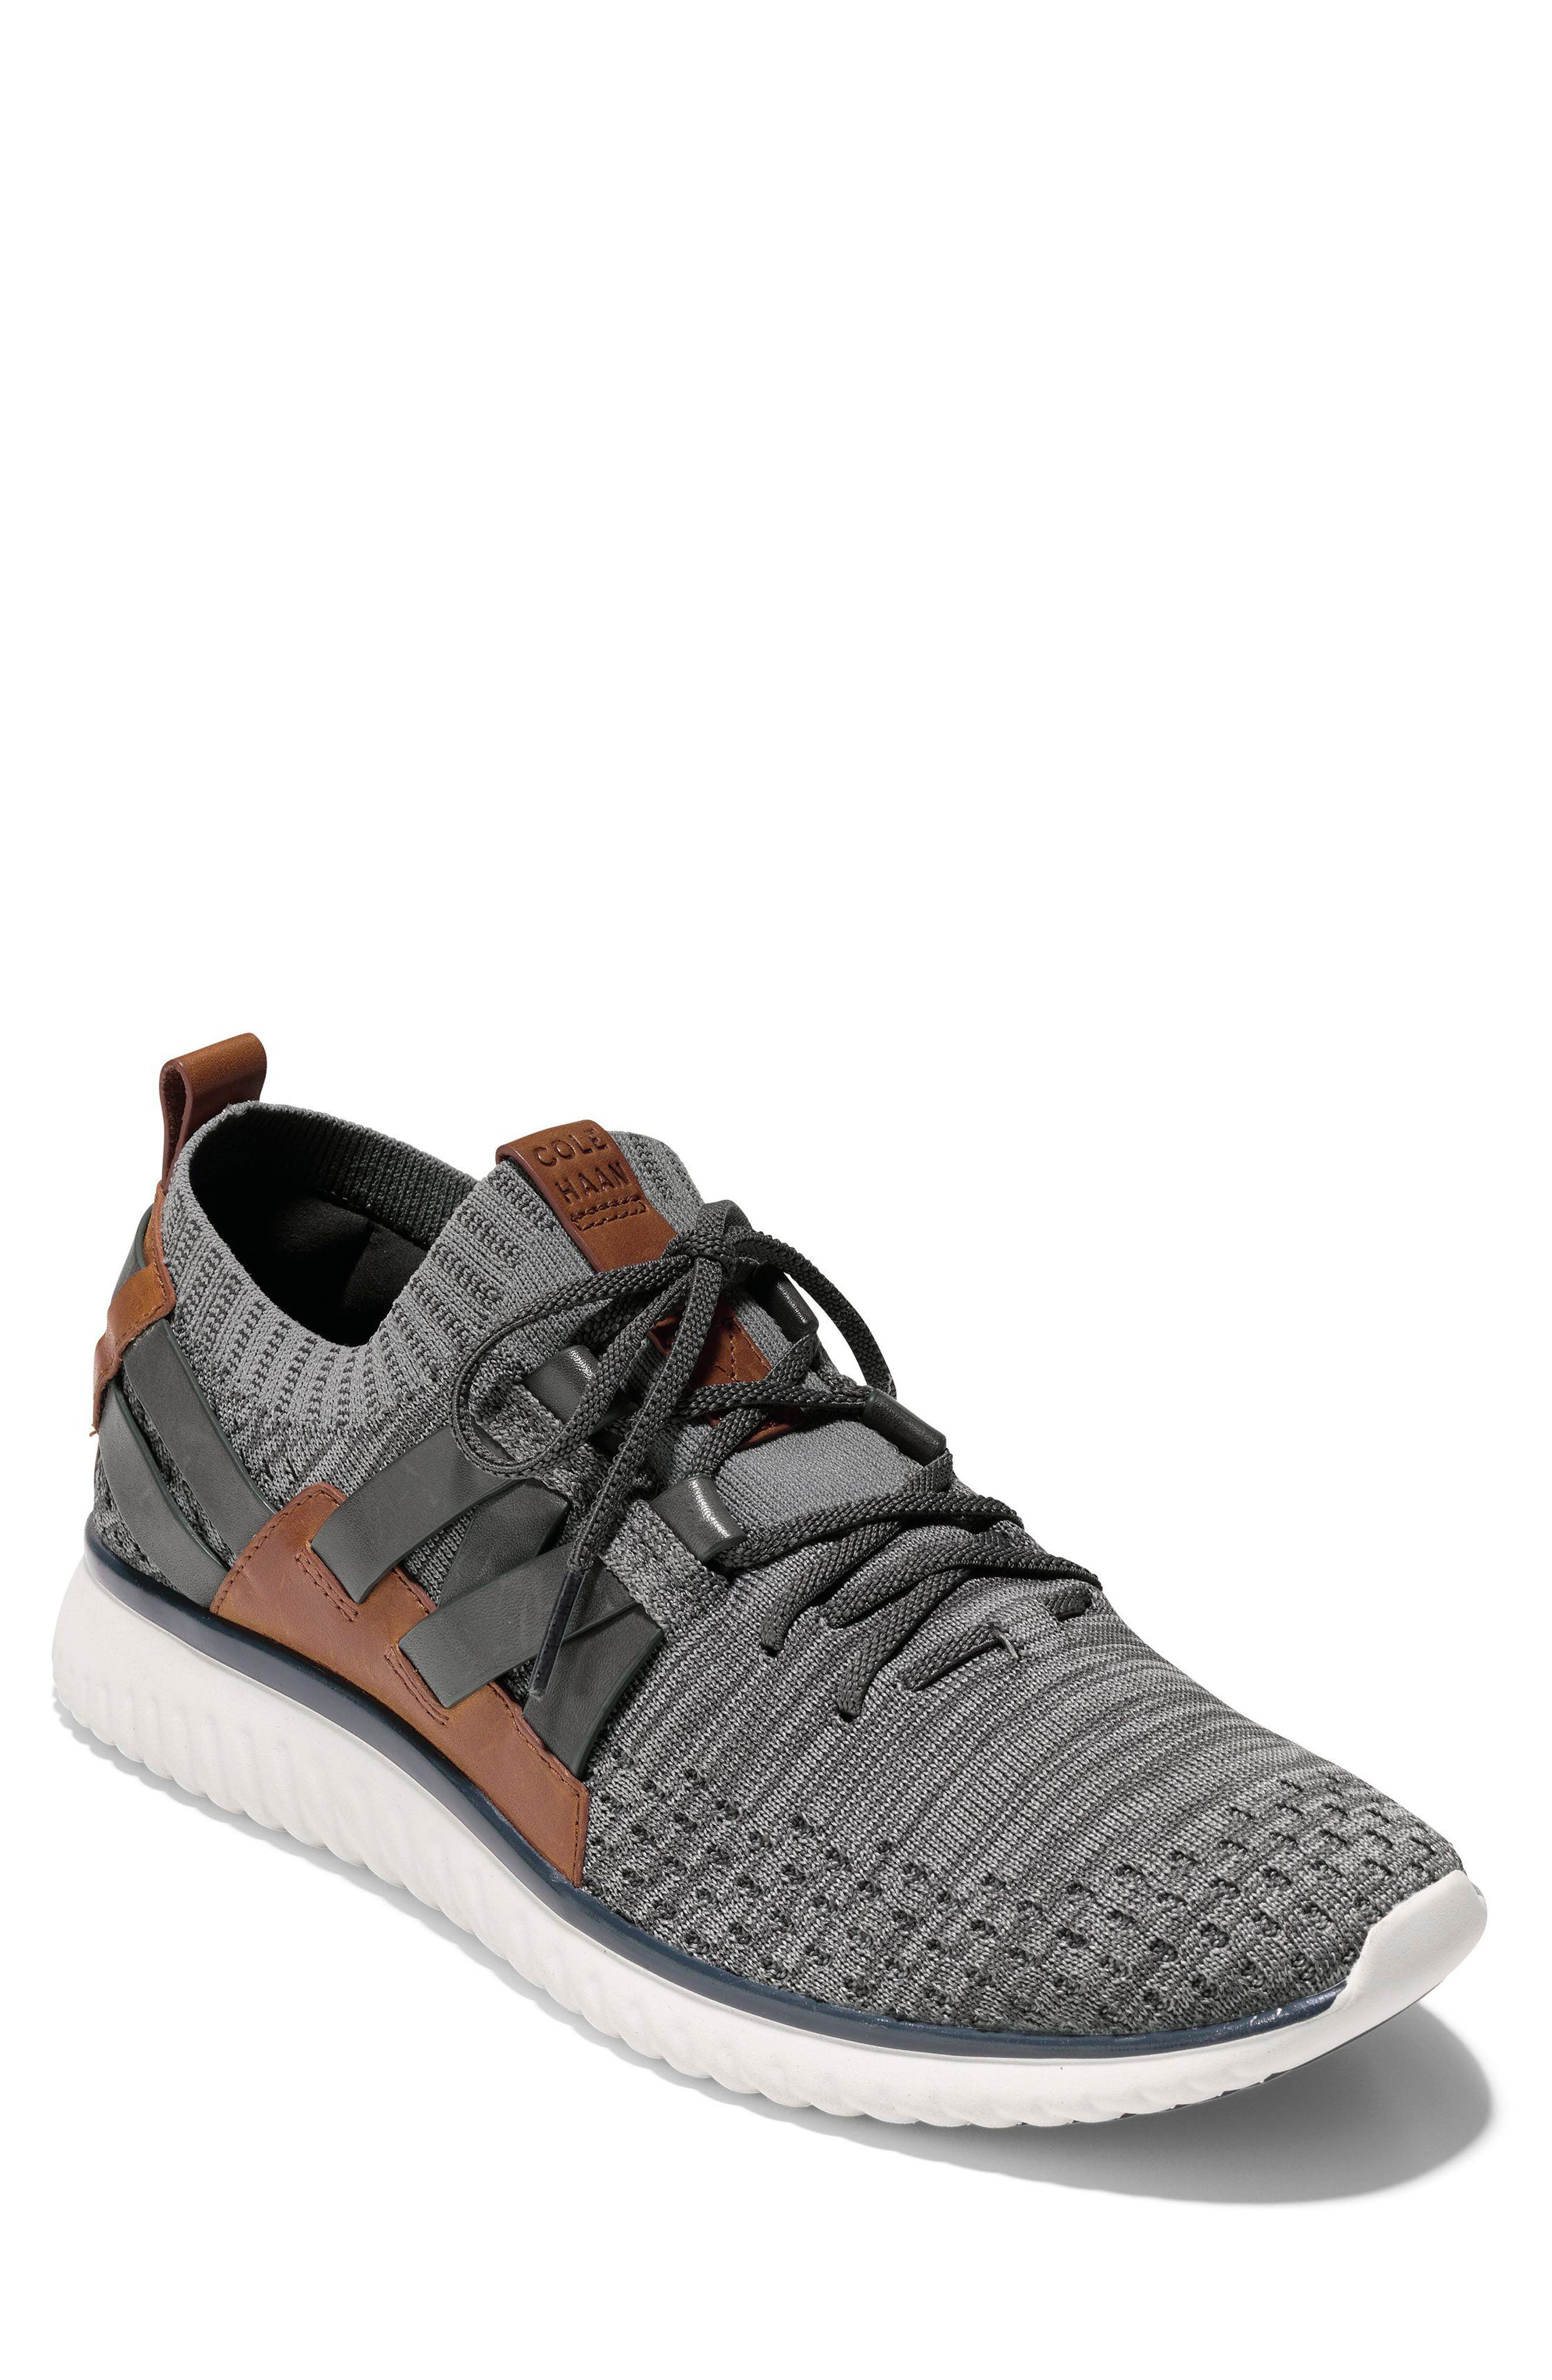 COLE HAAN,                             Grand Motion Sneaker,                             Main thumbnail 1, color,                             020